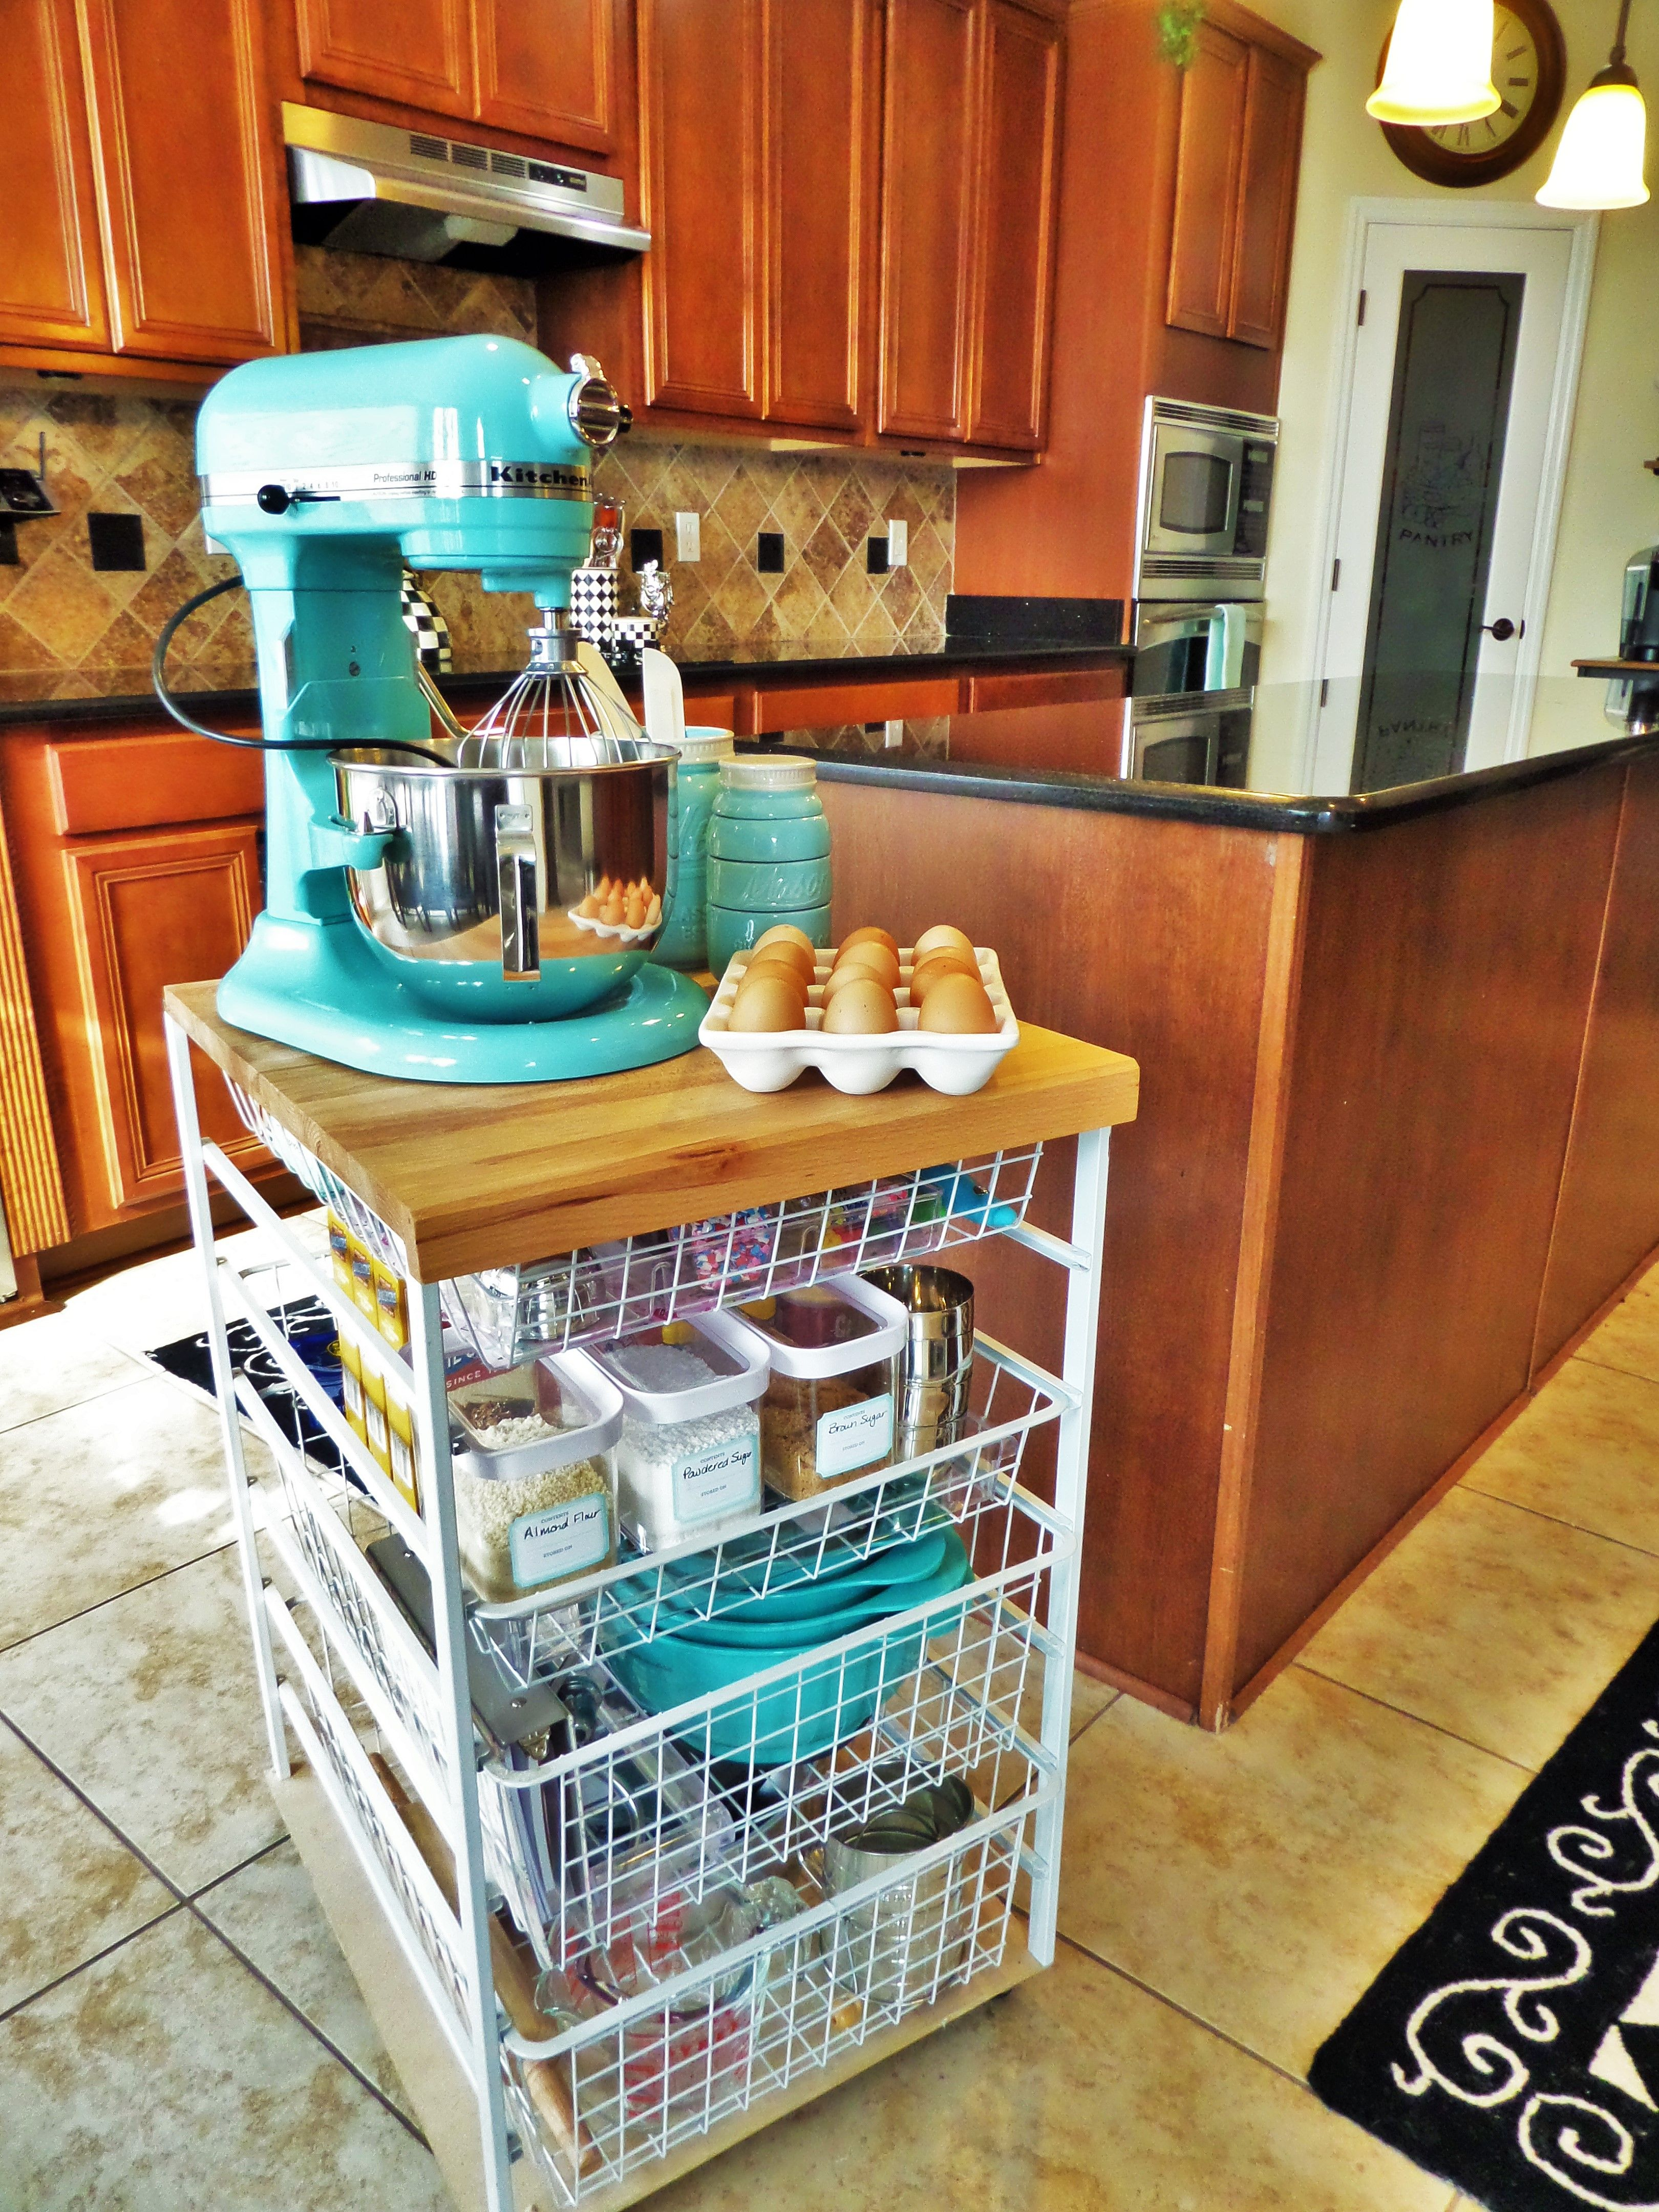 Baking Station A Great Use For An Ikea Cart?! Couldnu0027t Use The Mixer But  Awesome For Baking Storage